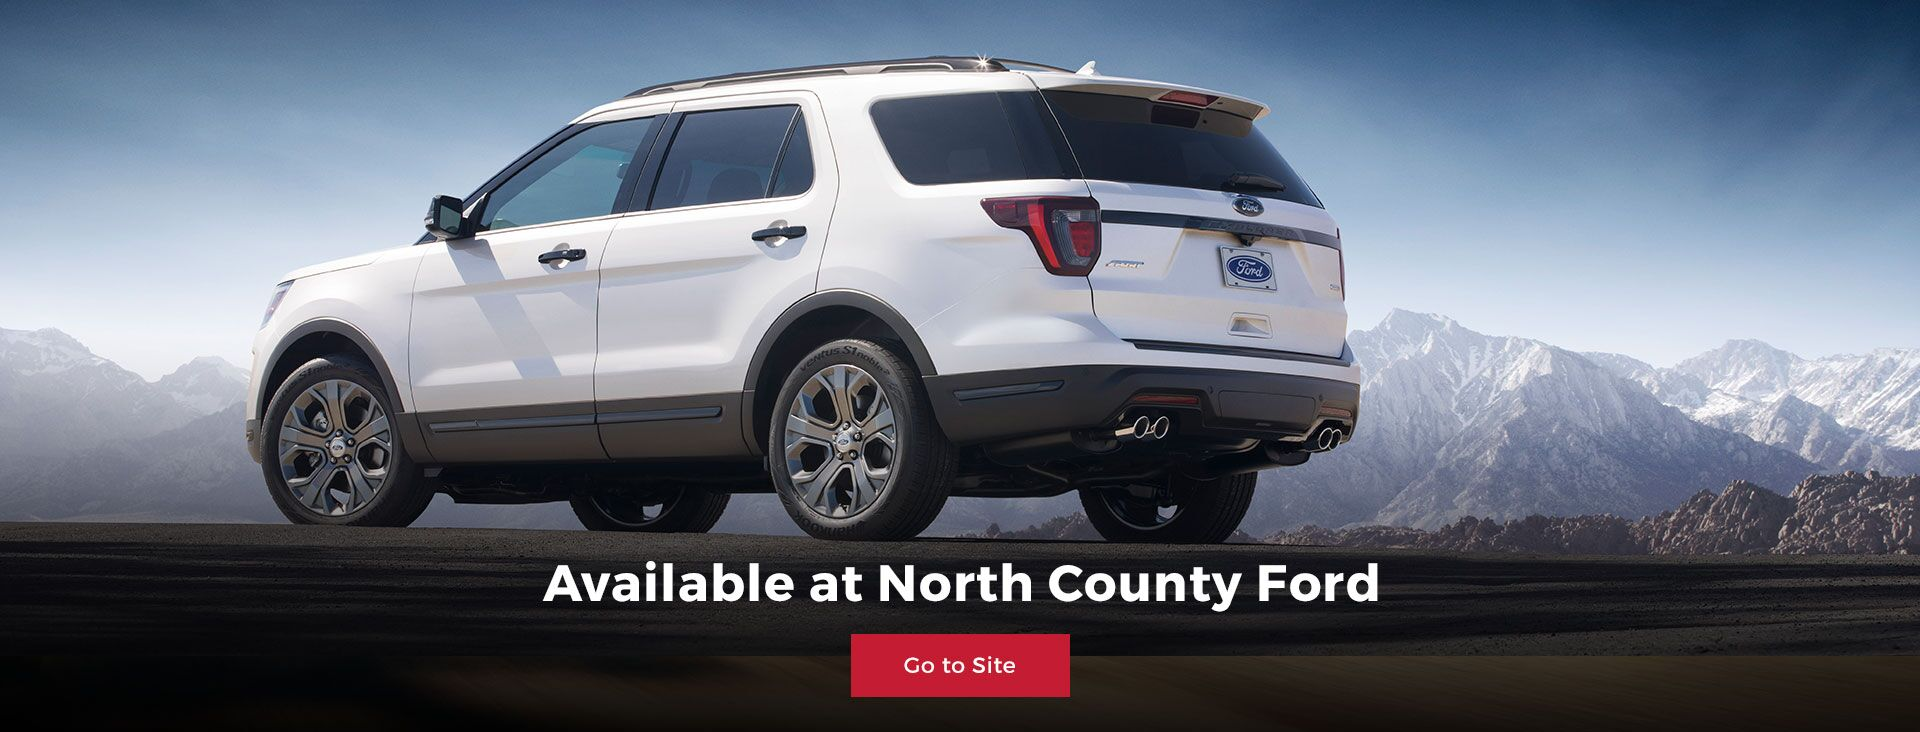 NORTH COUNTY FORD in Vista, CA